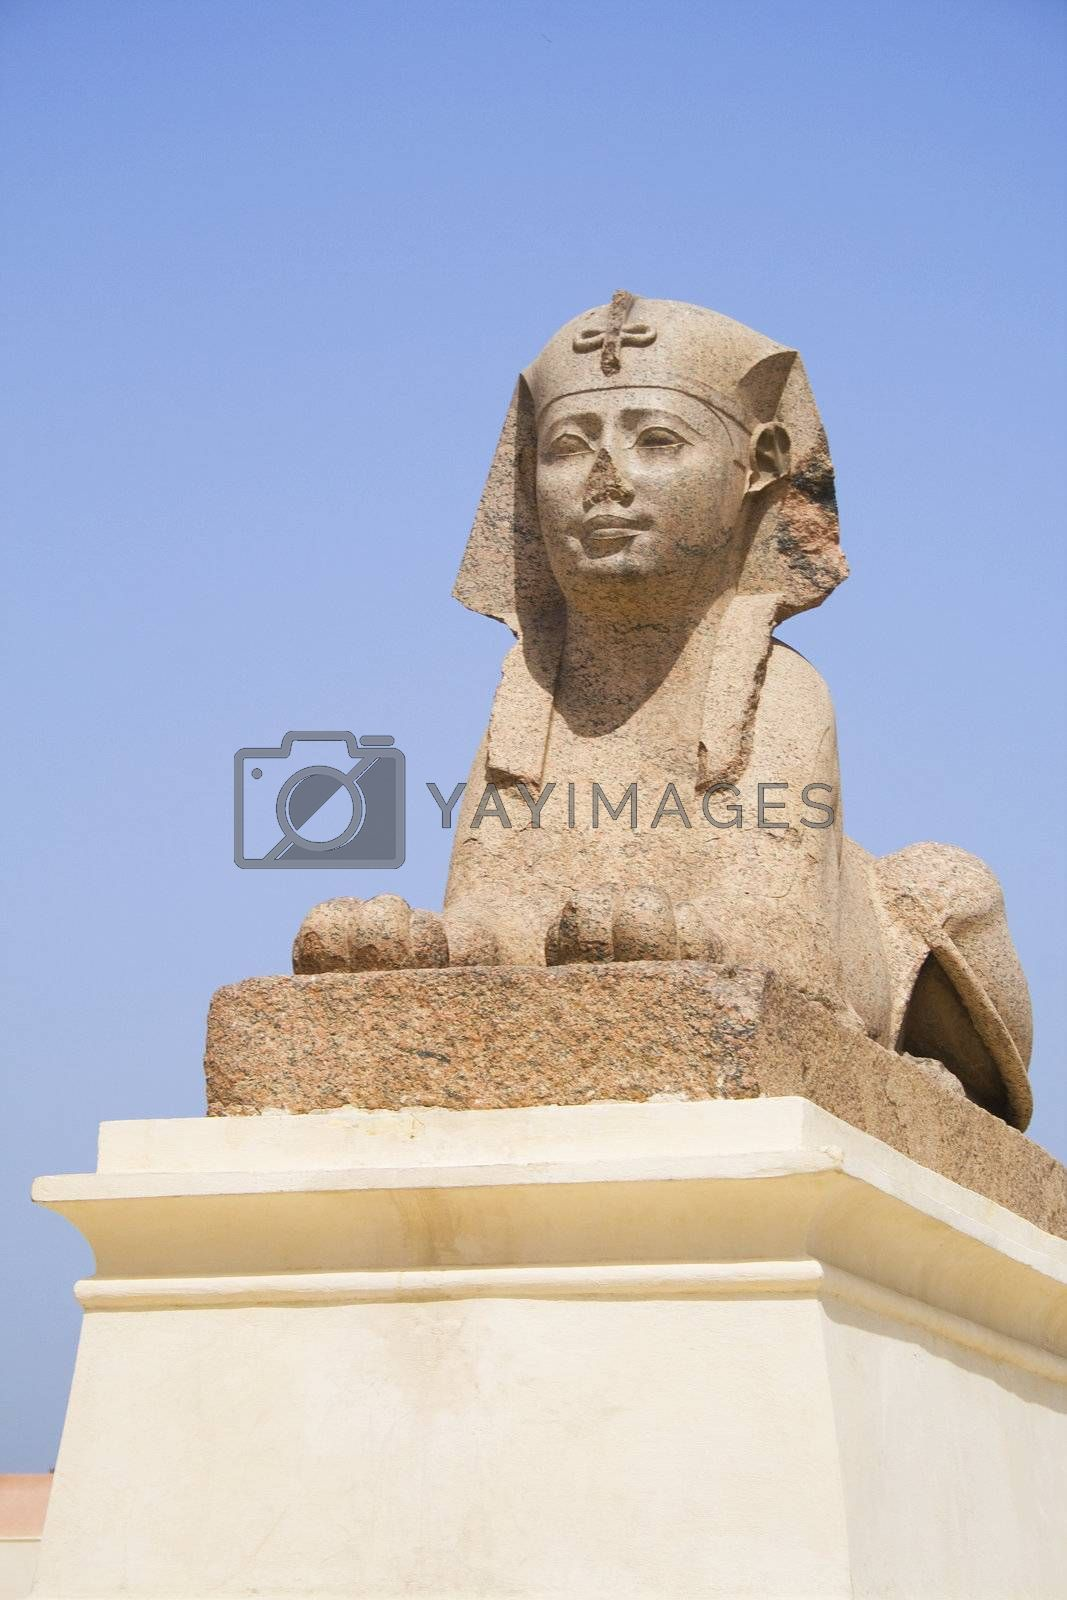 Royalty free image of Ptolemaic Sphinx at Pompey's Pillar, Egypt by shariffc